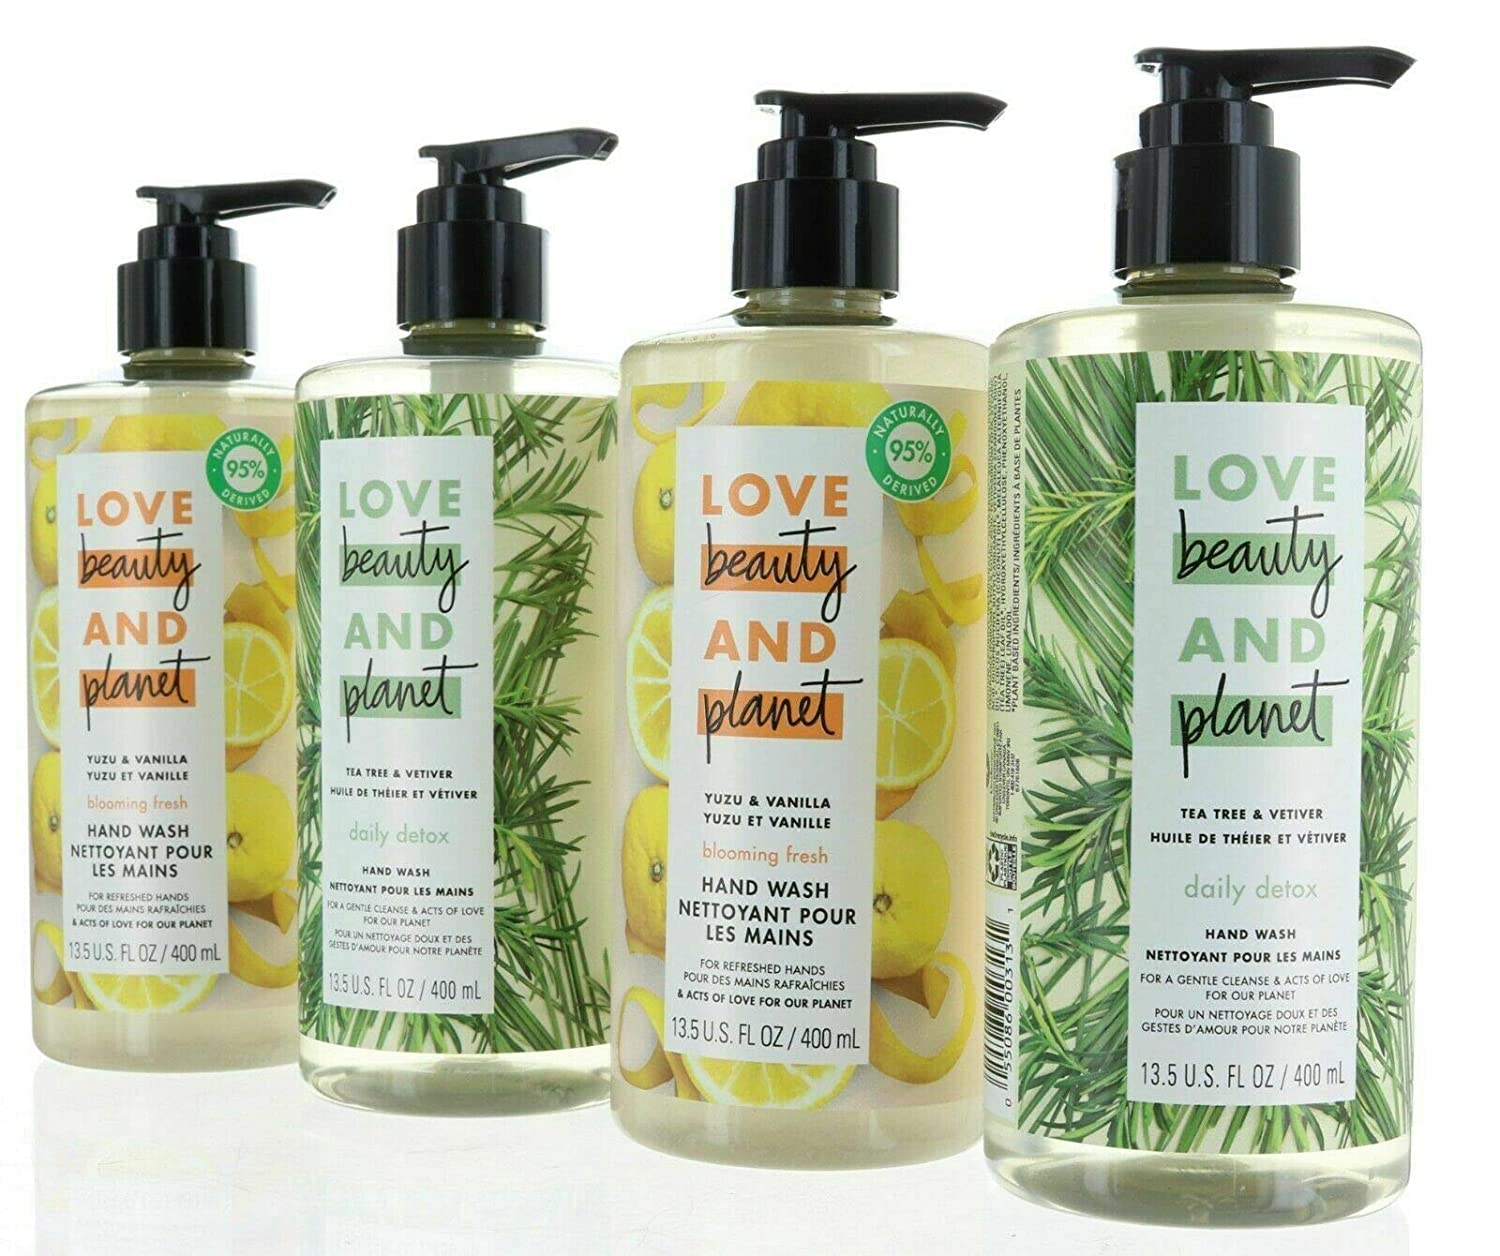 Love Beauty And Planet Store Yuzu and Vanilla liquid and Tea Tree and Vetiver Hand Wash 13.5 Oz (4 Pack) 2 of each flavor : Beauty